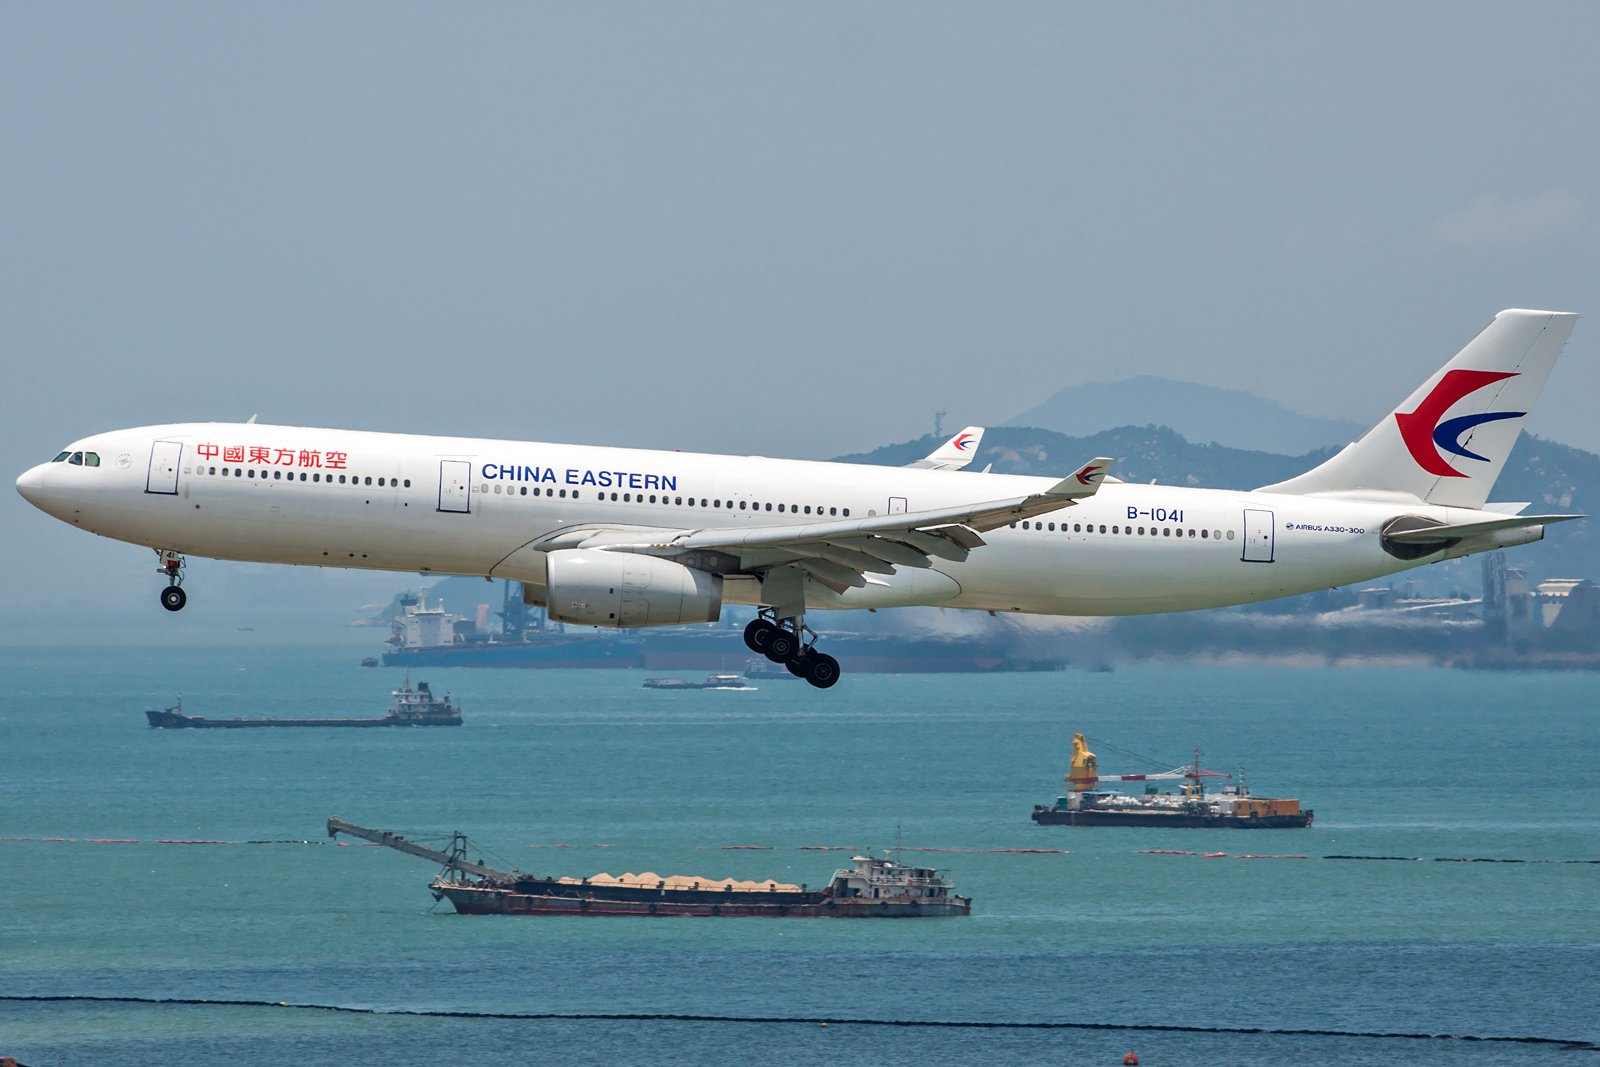 China Eastern Airlines Airbus A330-343 B-1041